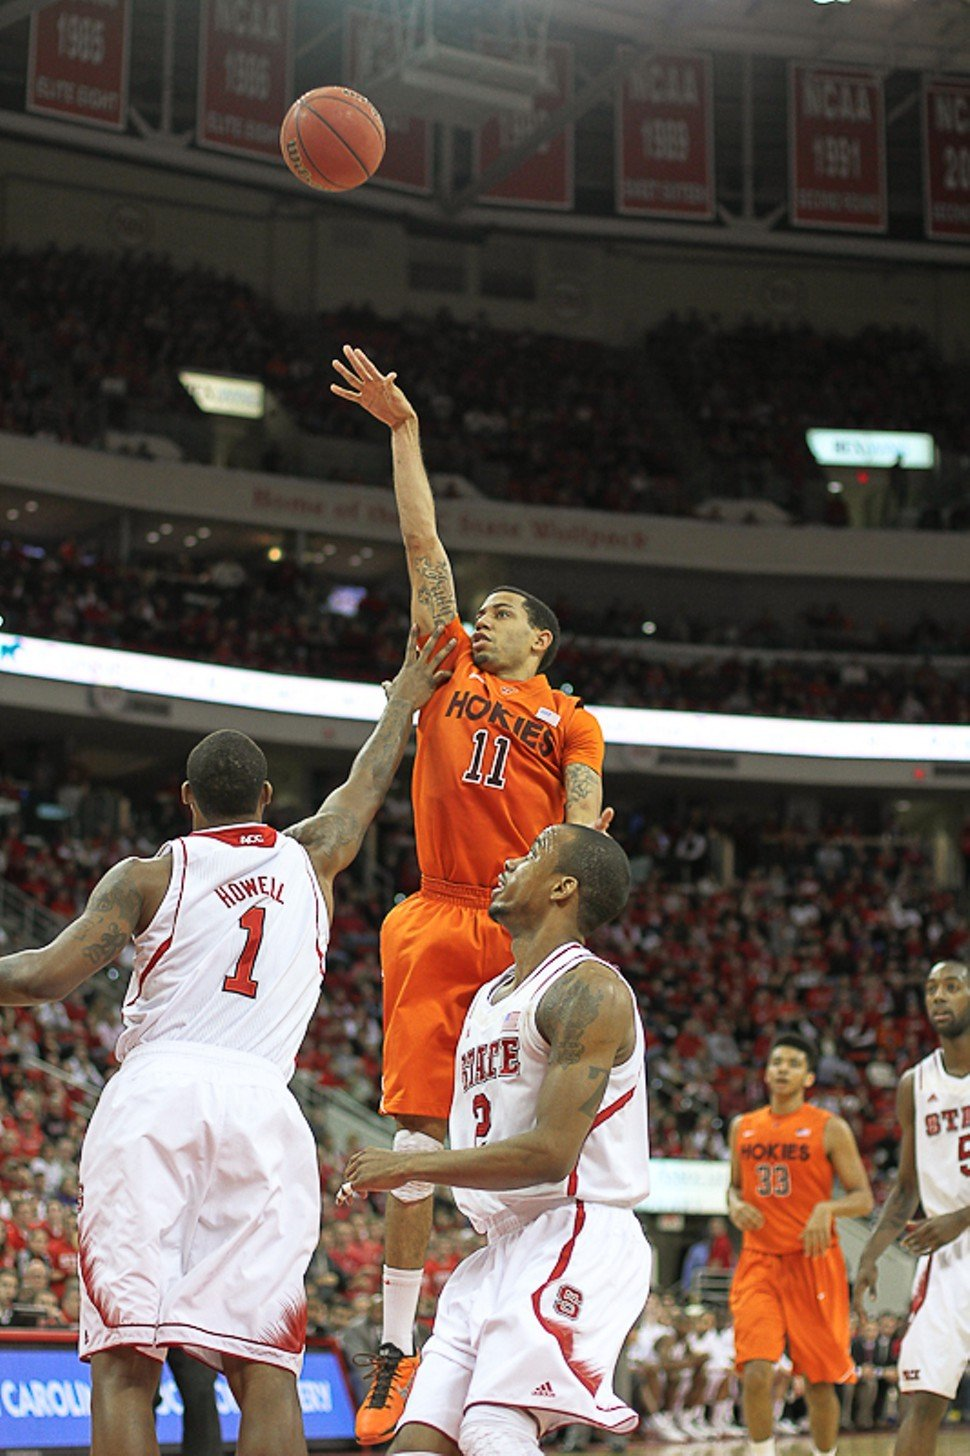 Virginia Techs Erick Green reaches for two of his game-high 29 points against N.C. State